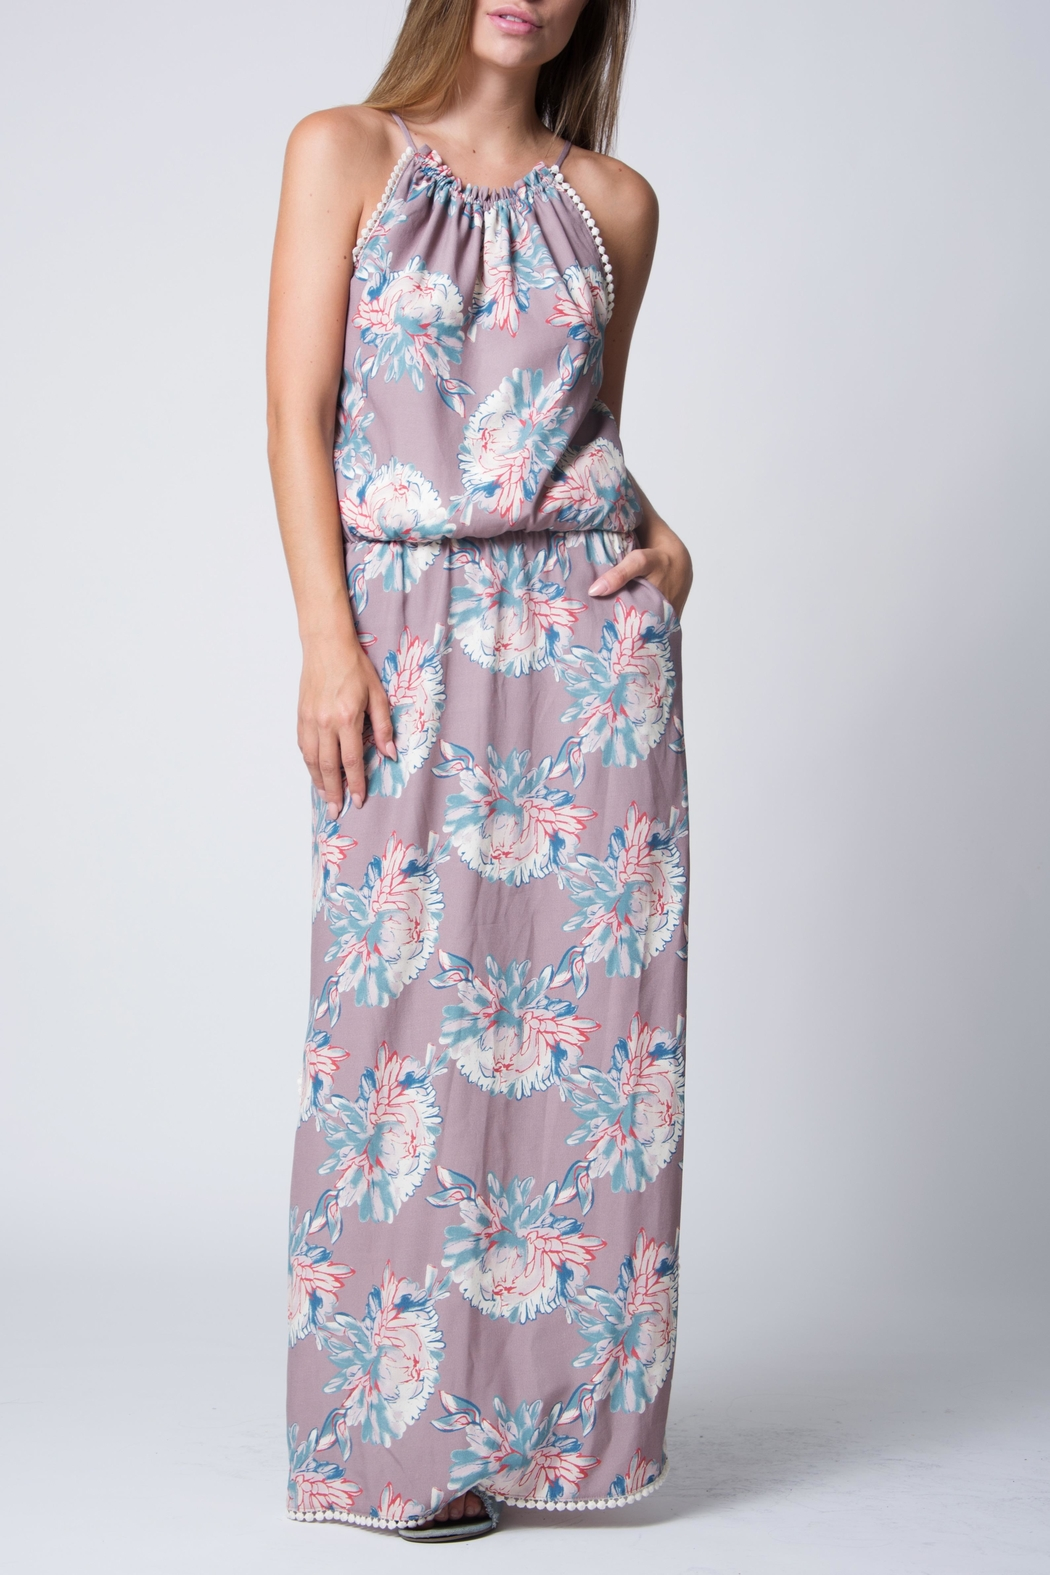 Wanderlux Floral Halter Maxi - Main Image